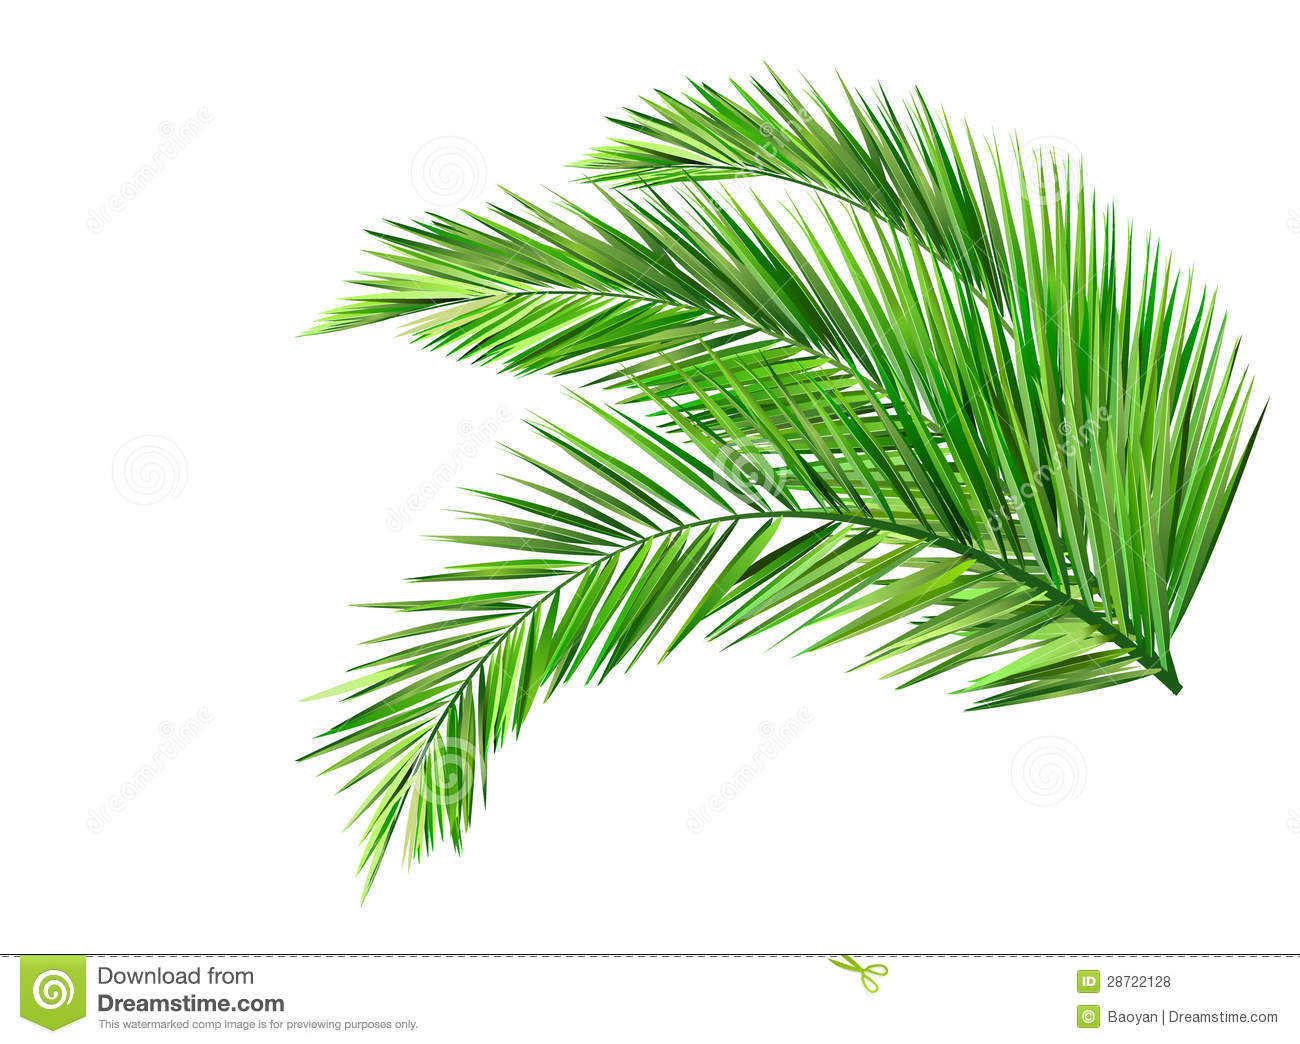 Coconut leaves stock vector. Illustration of tree, leaf ...